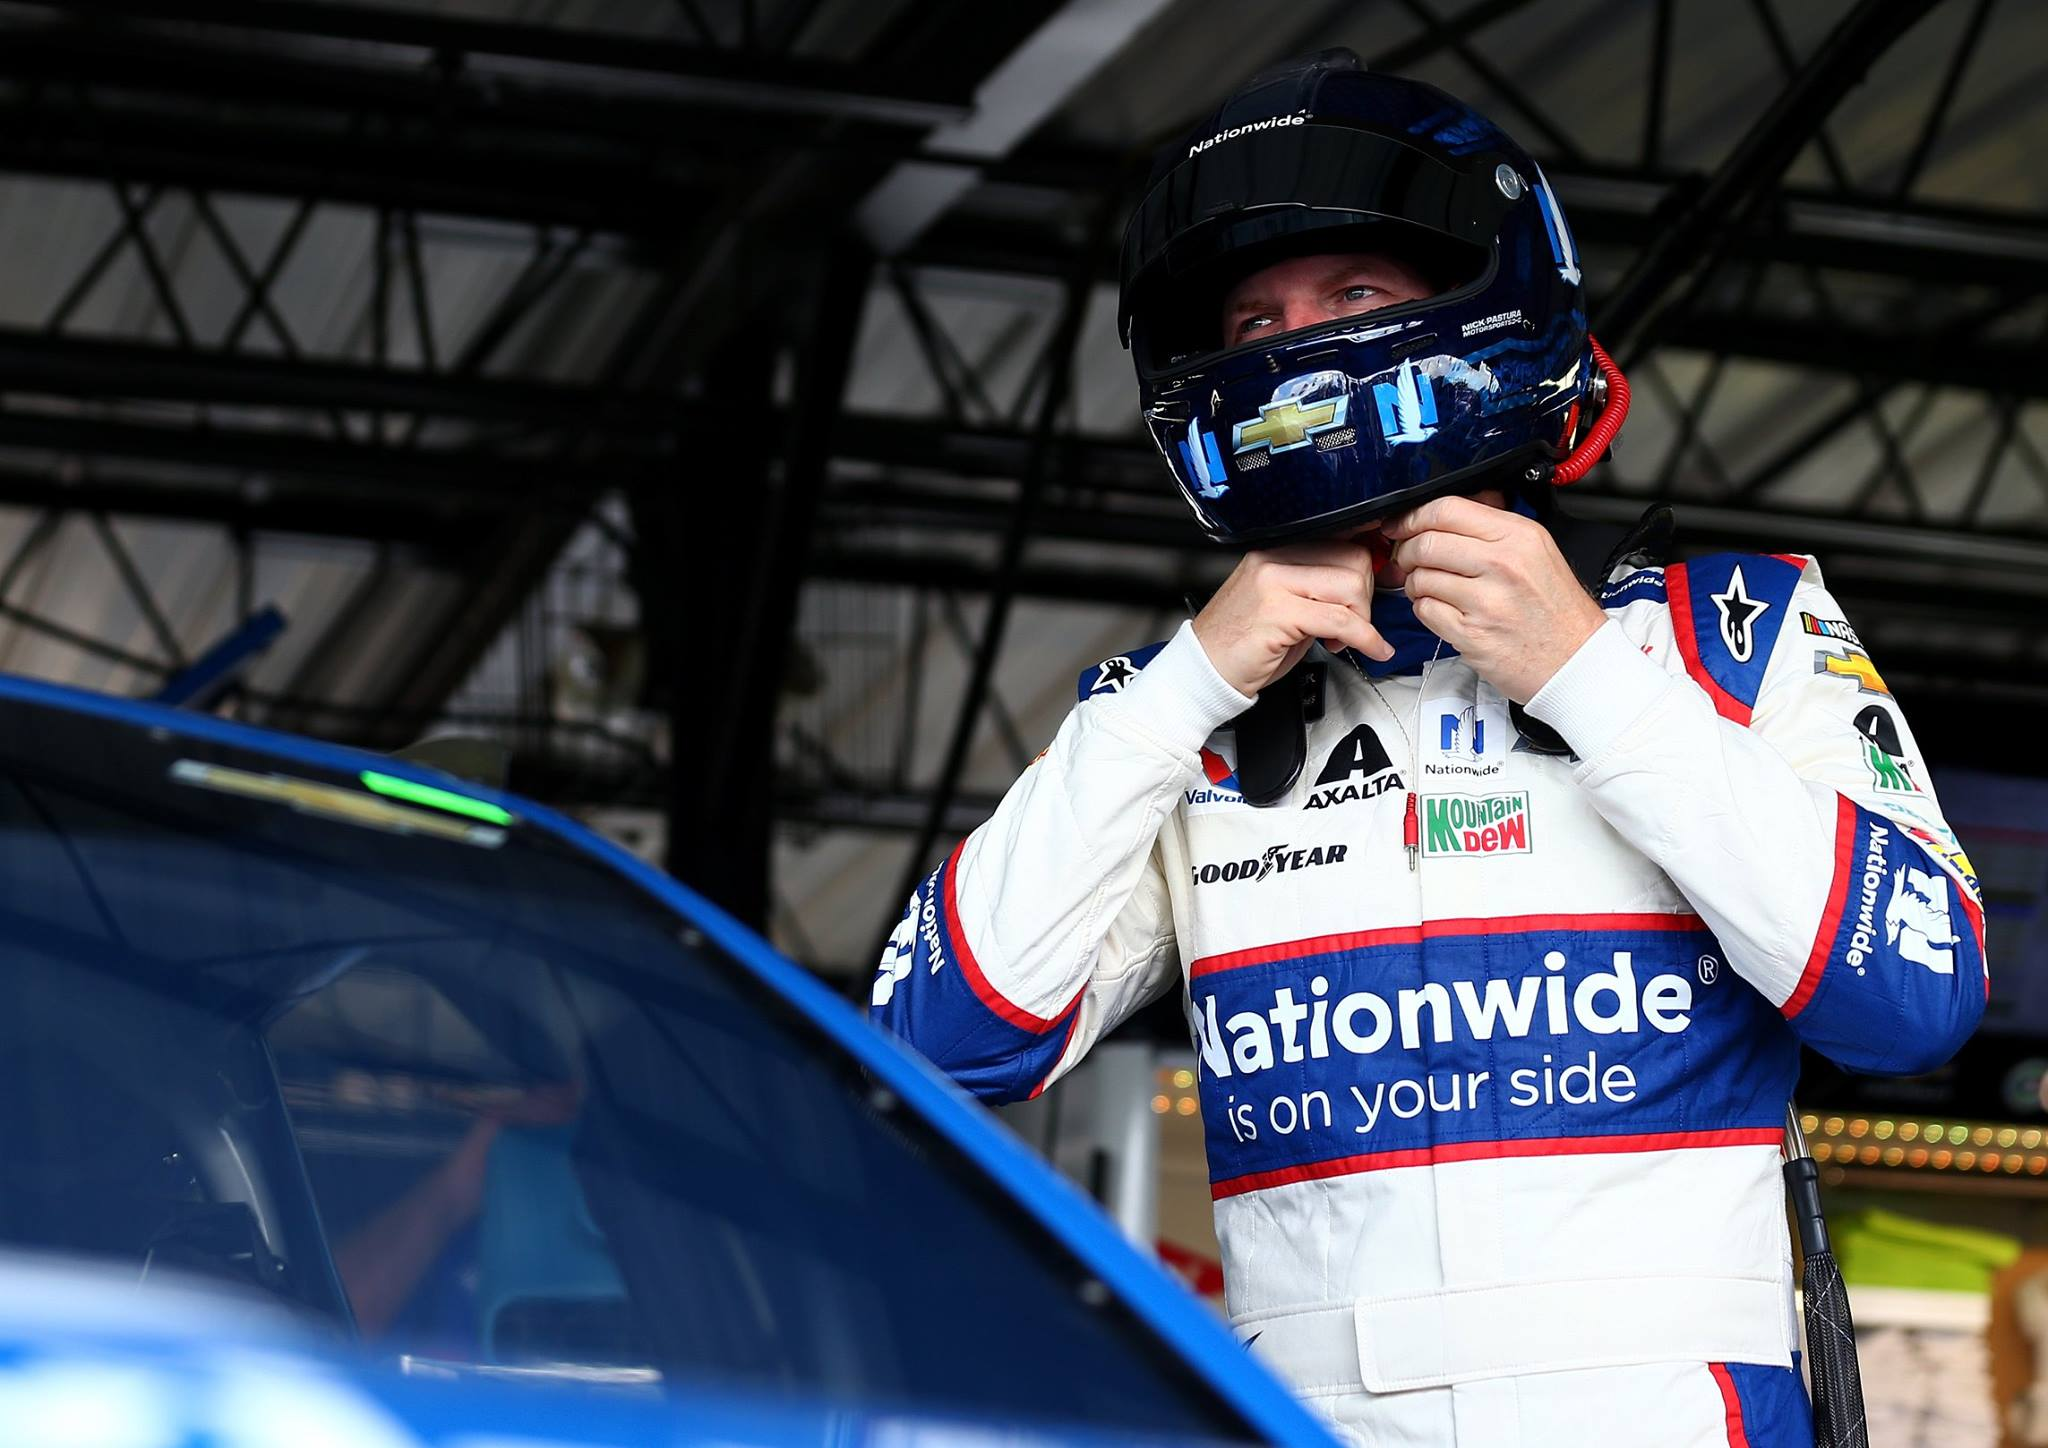 Dale Earnhardt Jr crew chief suspension after Darlington Raceway